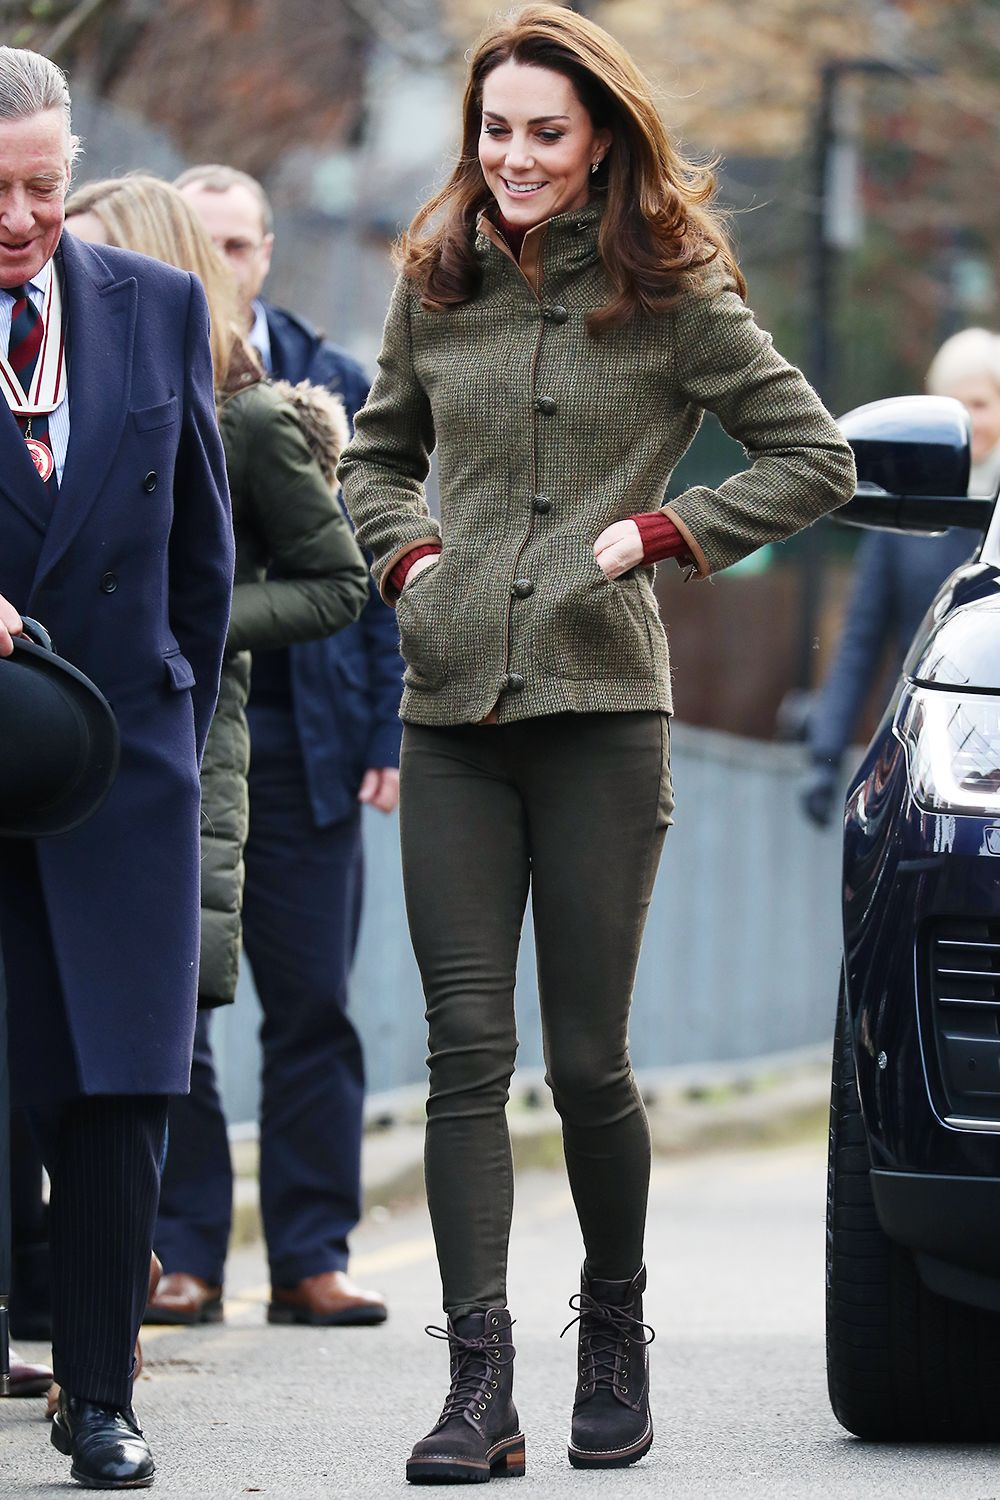 Kate Middleton Is Making Us Want to Buy These & Other Stories Boots